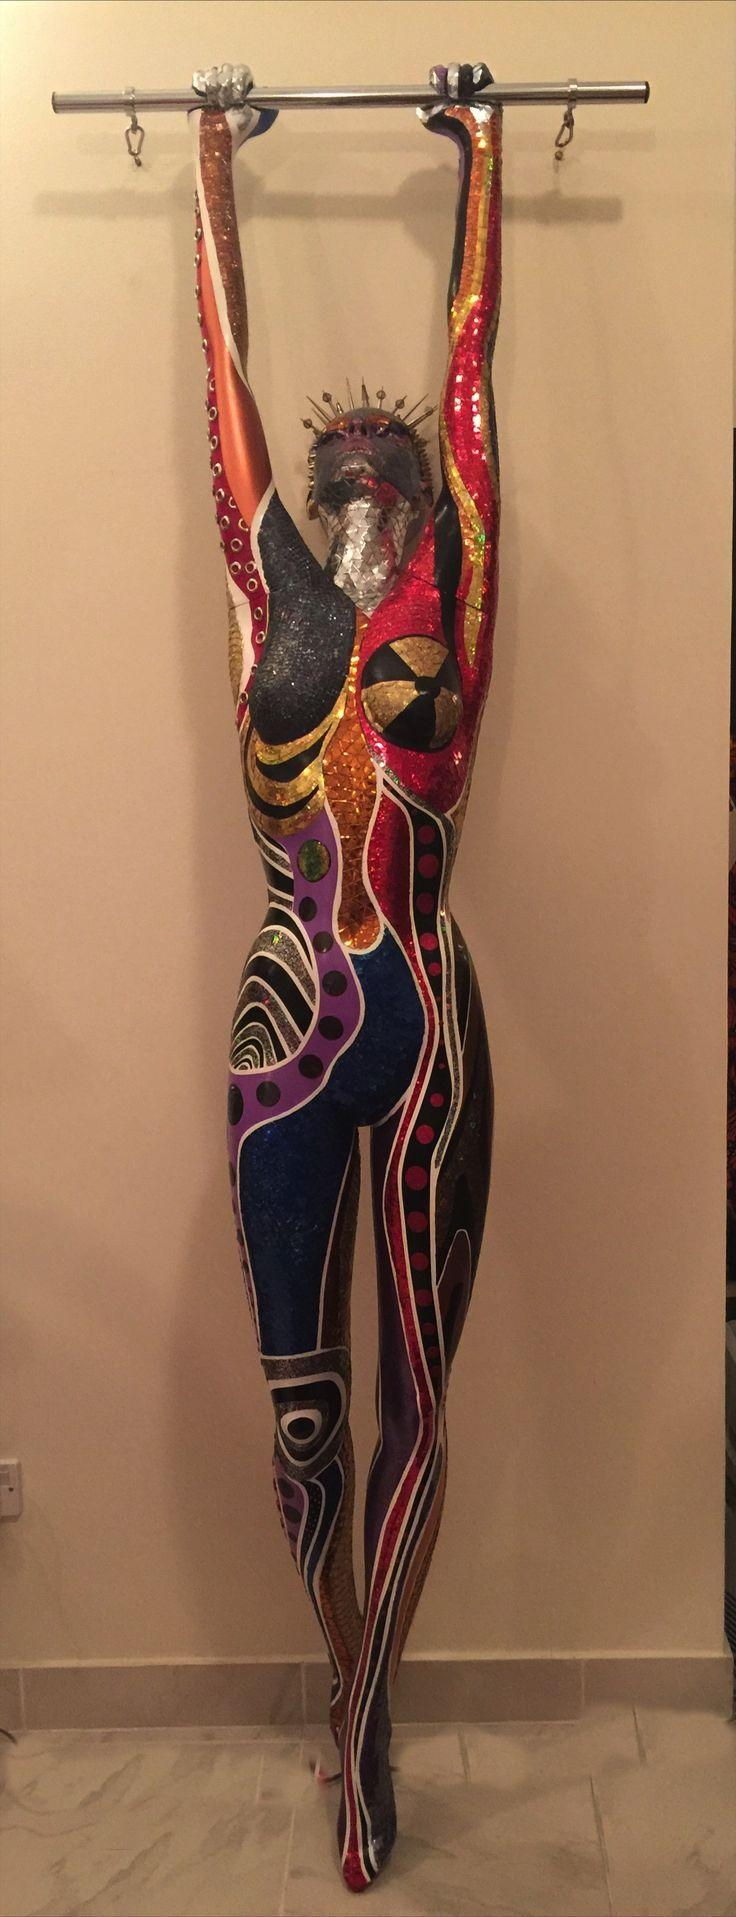 30 Best Craft Show Booth W/mannequins Images On Pinterest Intended For Mannequin Wall Art (Image 5 of 20)